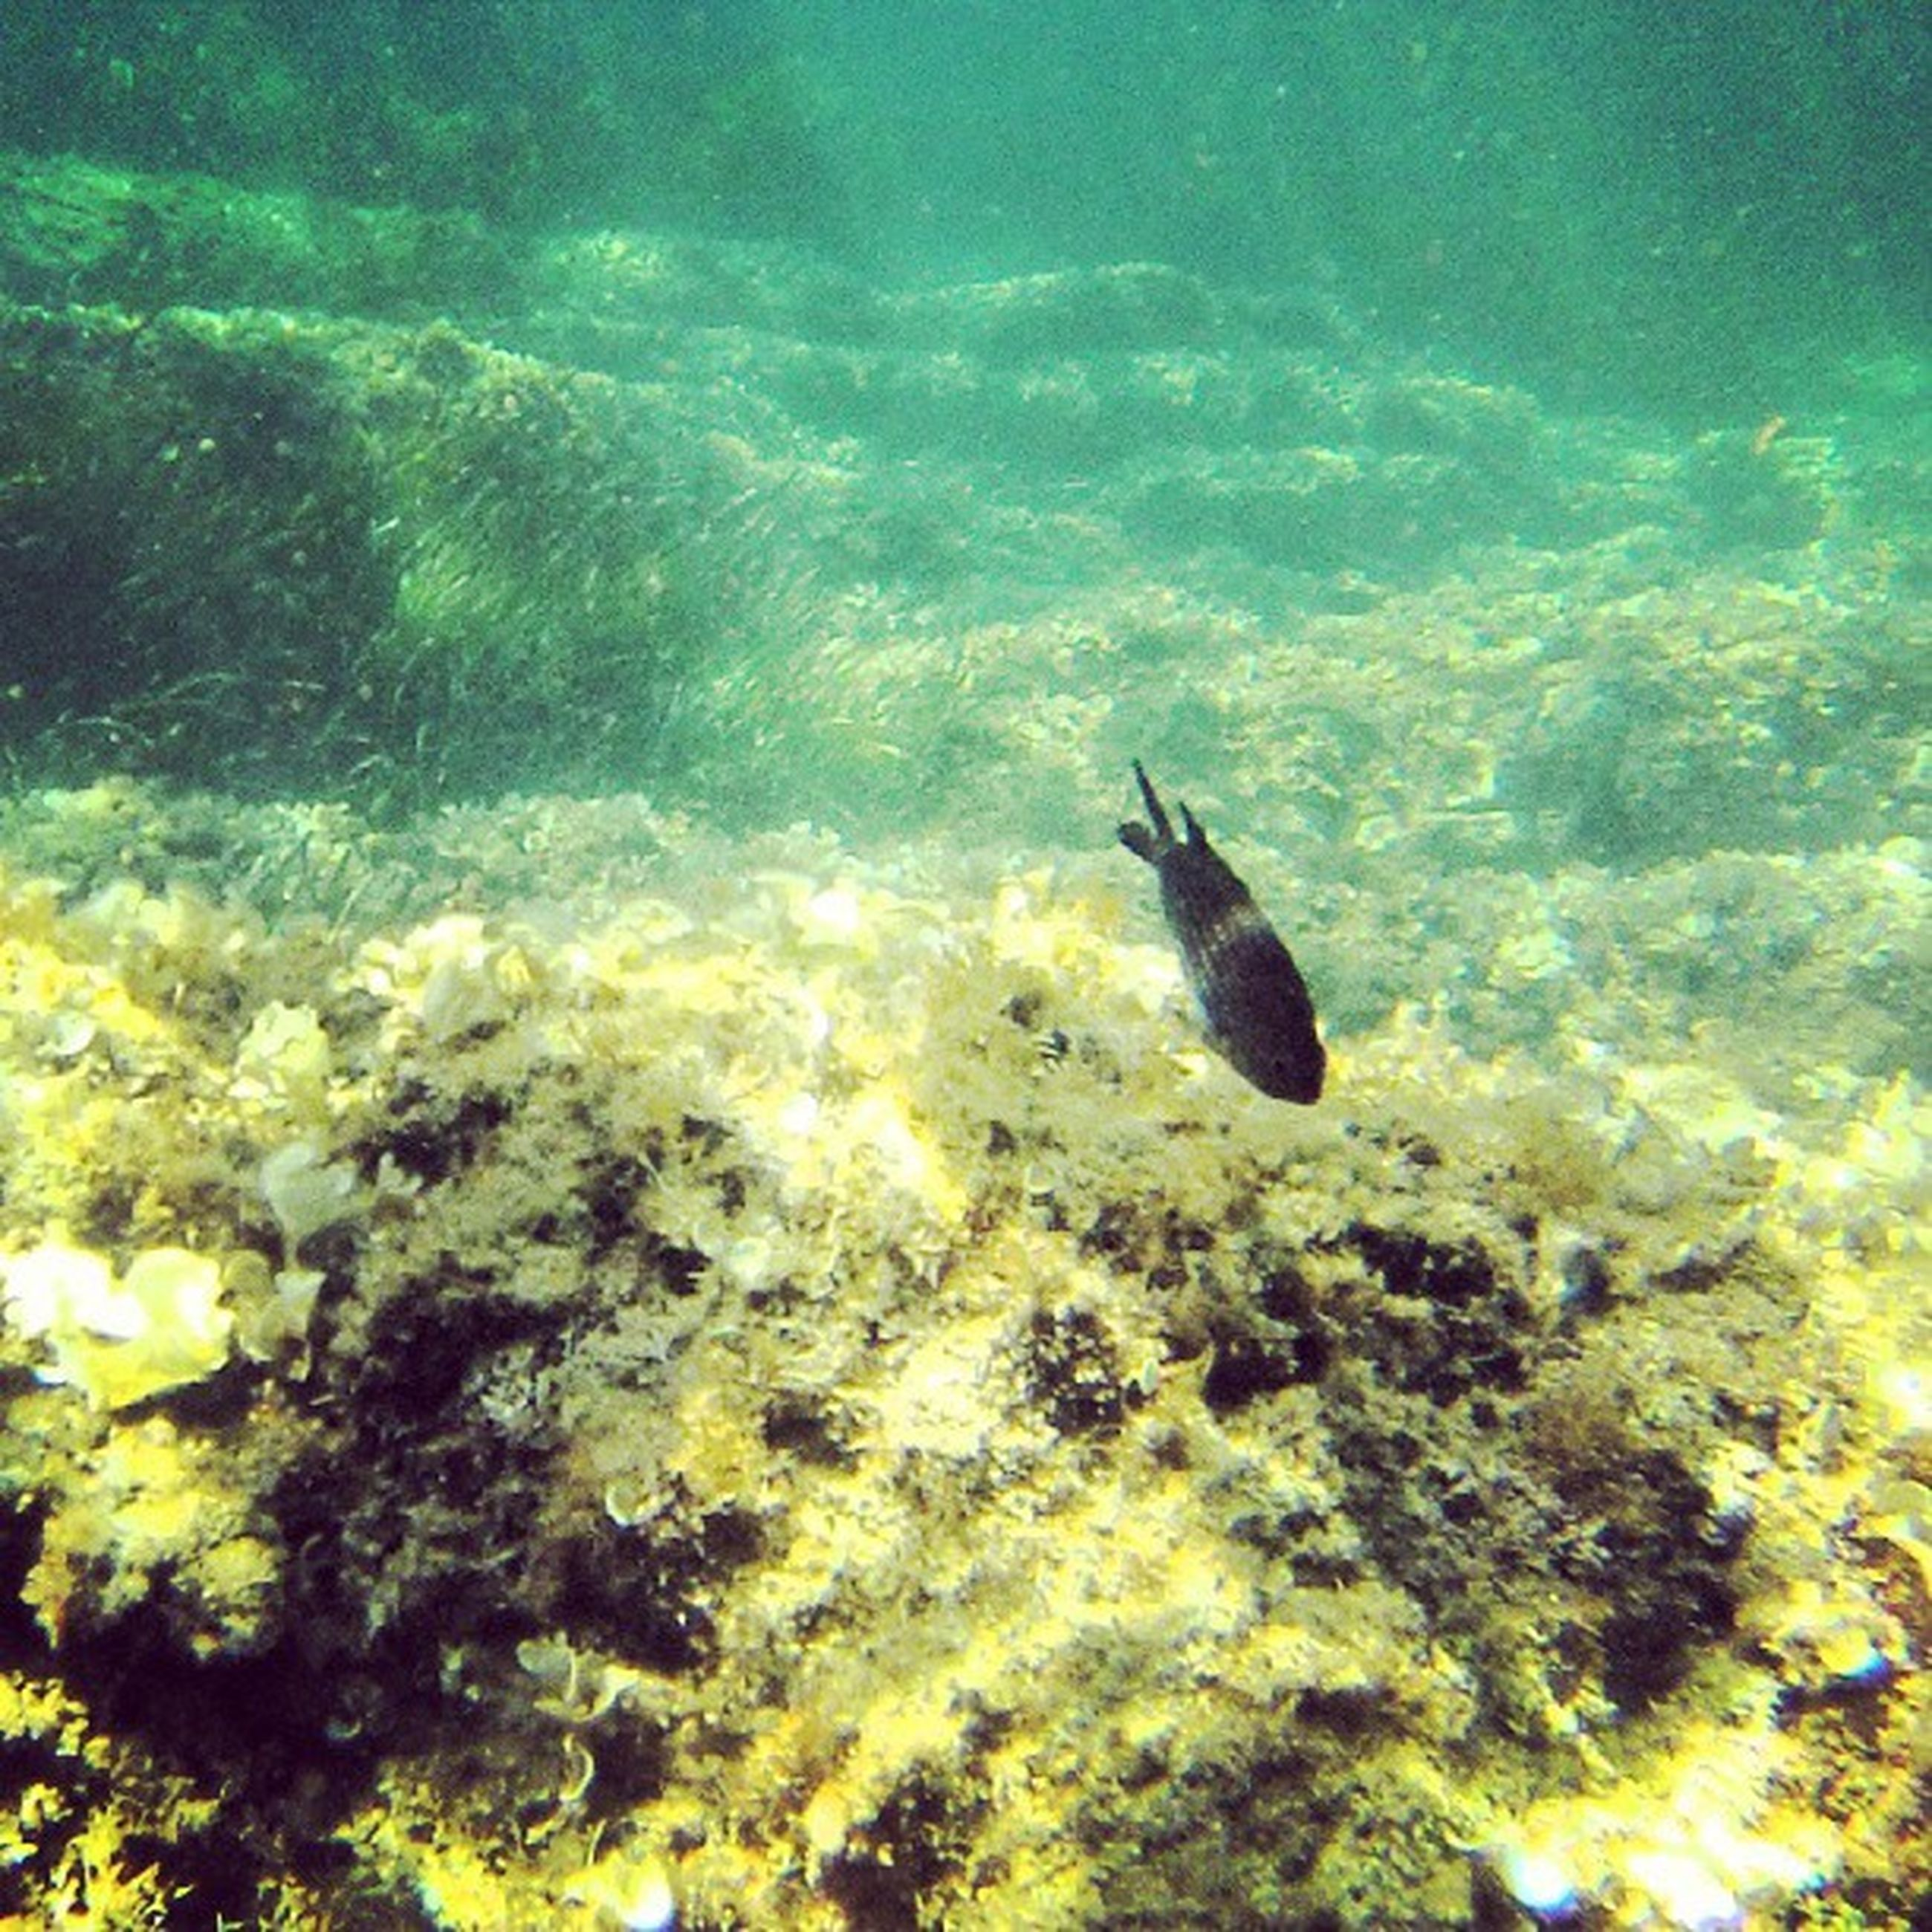 animal themes, animals in the wild, wildlife, water, one animal, swimming, bird, fish, nature, high angle view, underwater, sea, beauty in nature, zoology, two animals, no people, outdoors, sea life, full length, day